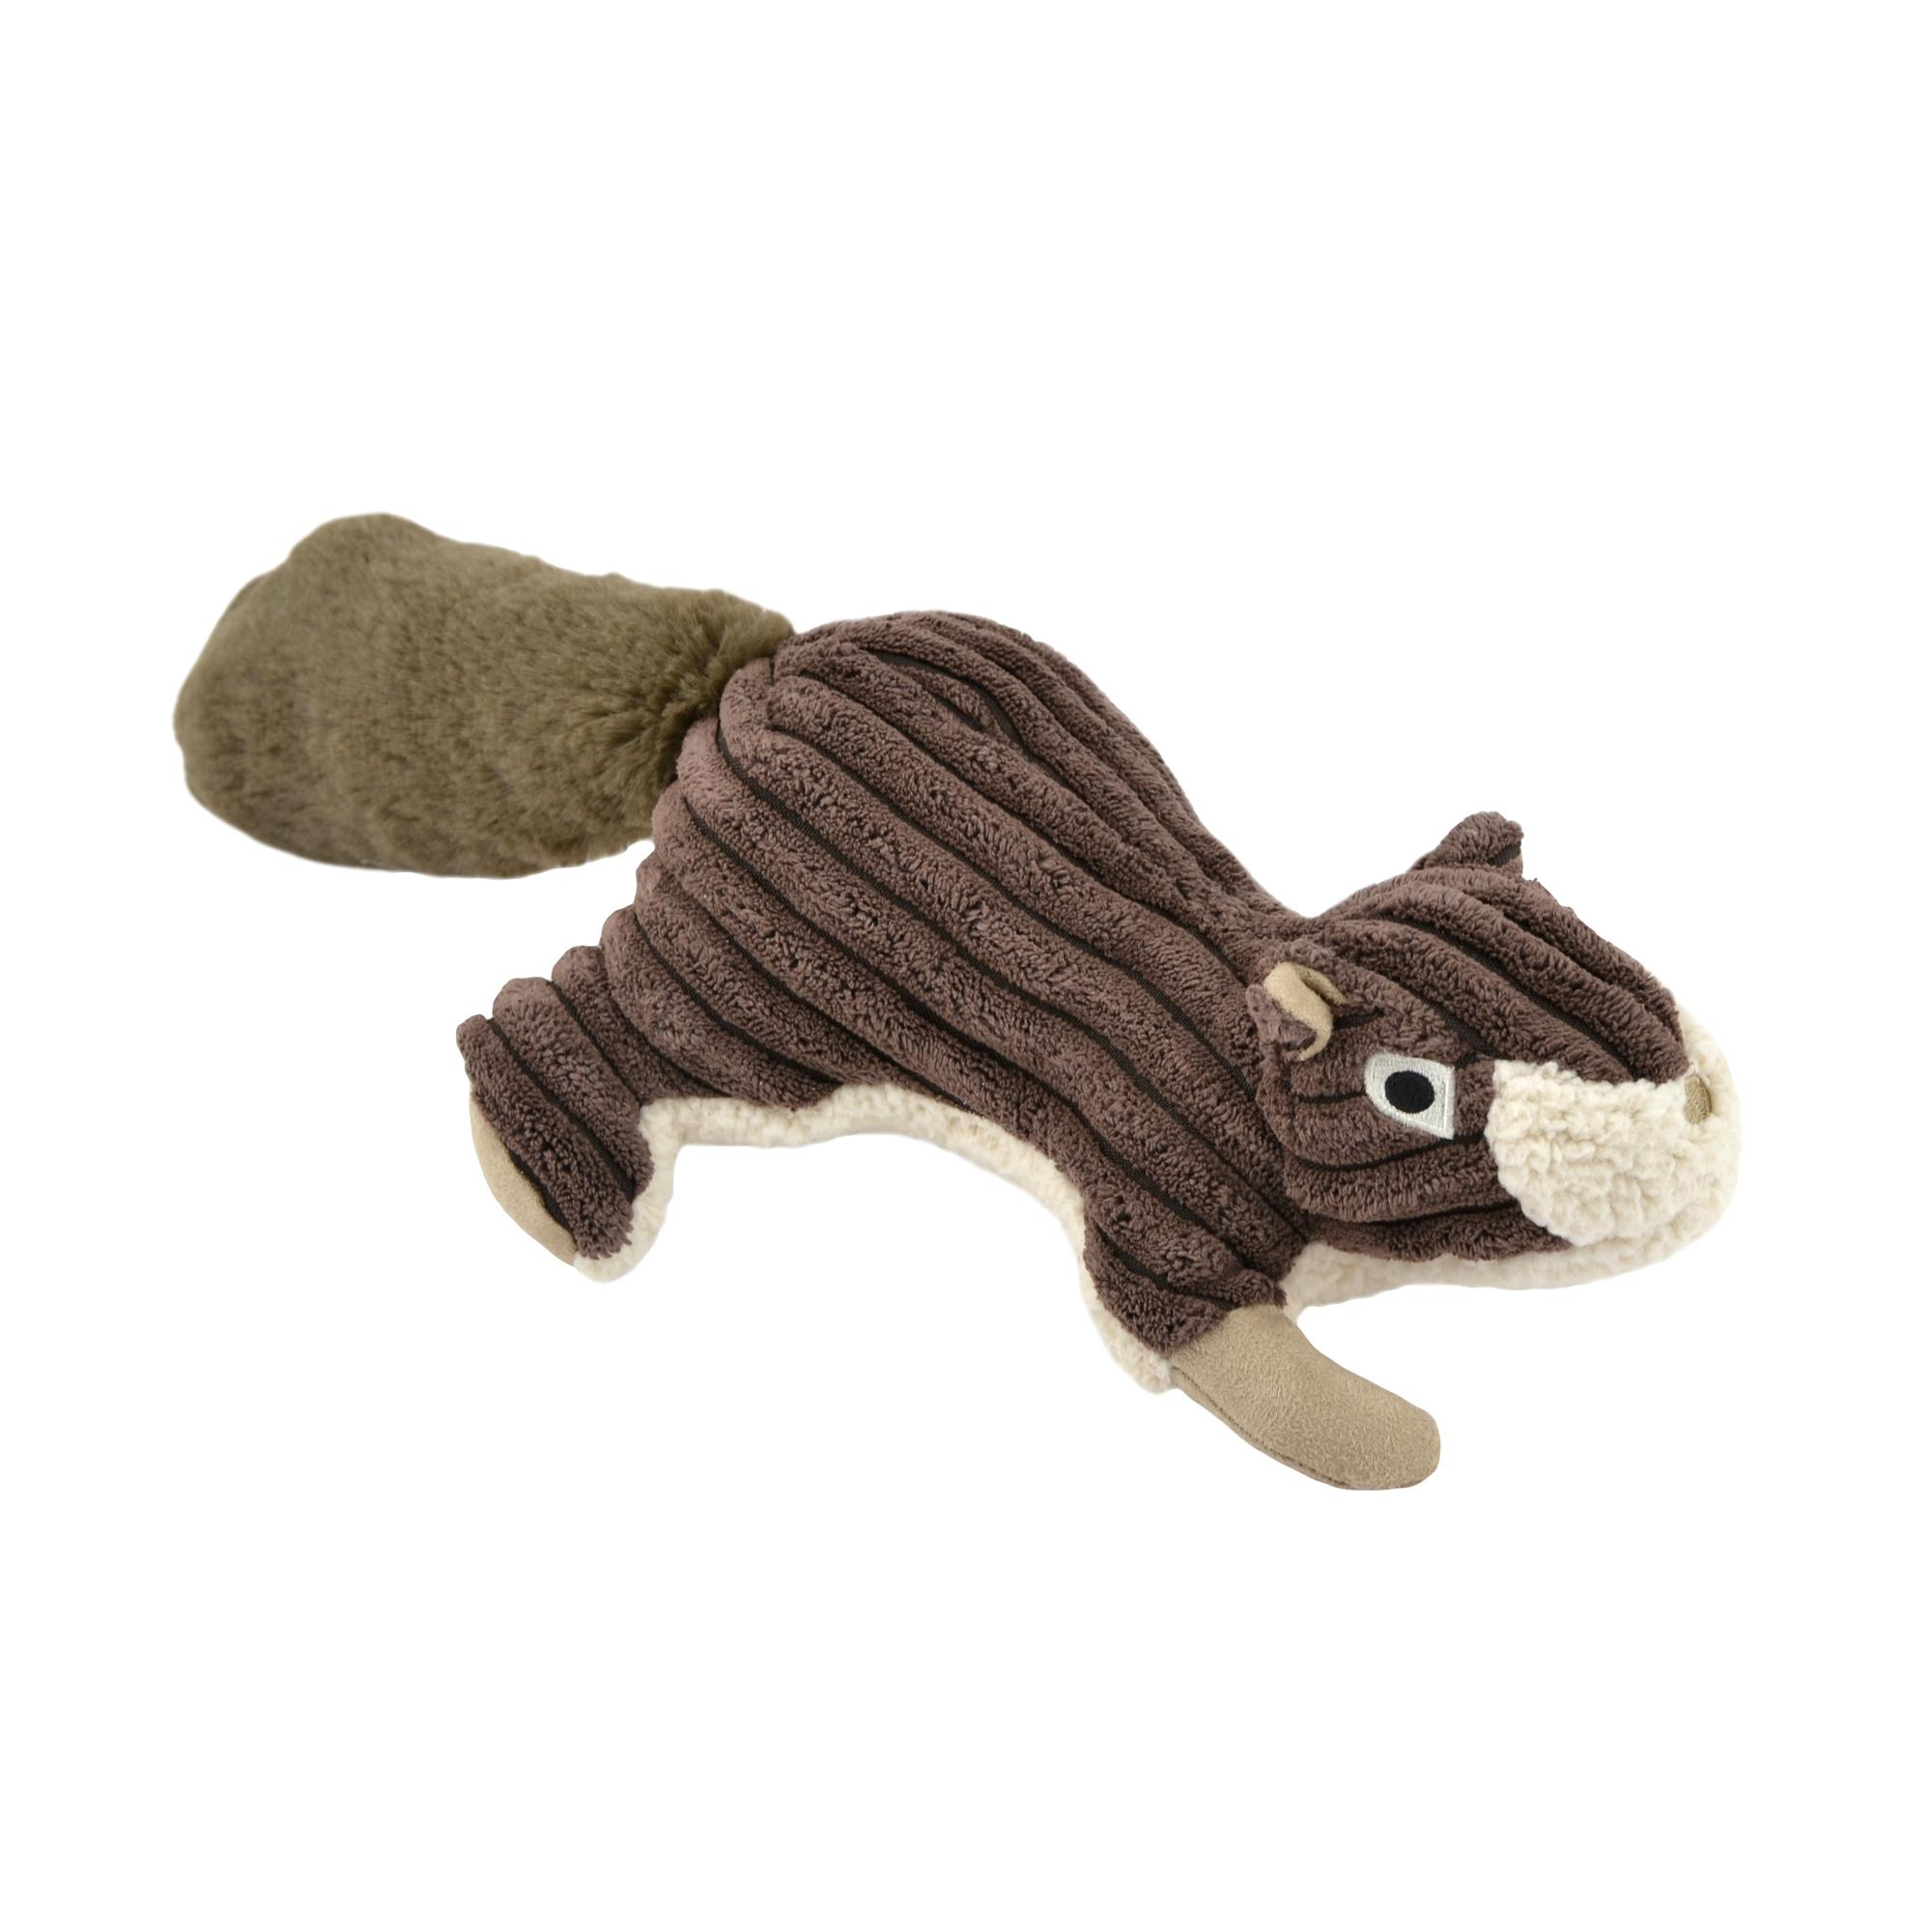 Tall Tails Squirrel Squeaker Dog Toy, 12-in (Size: 12-in) Image